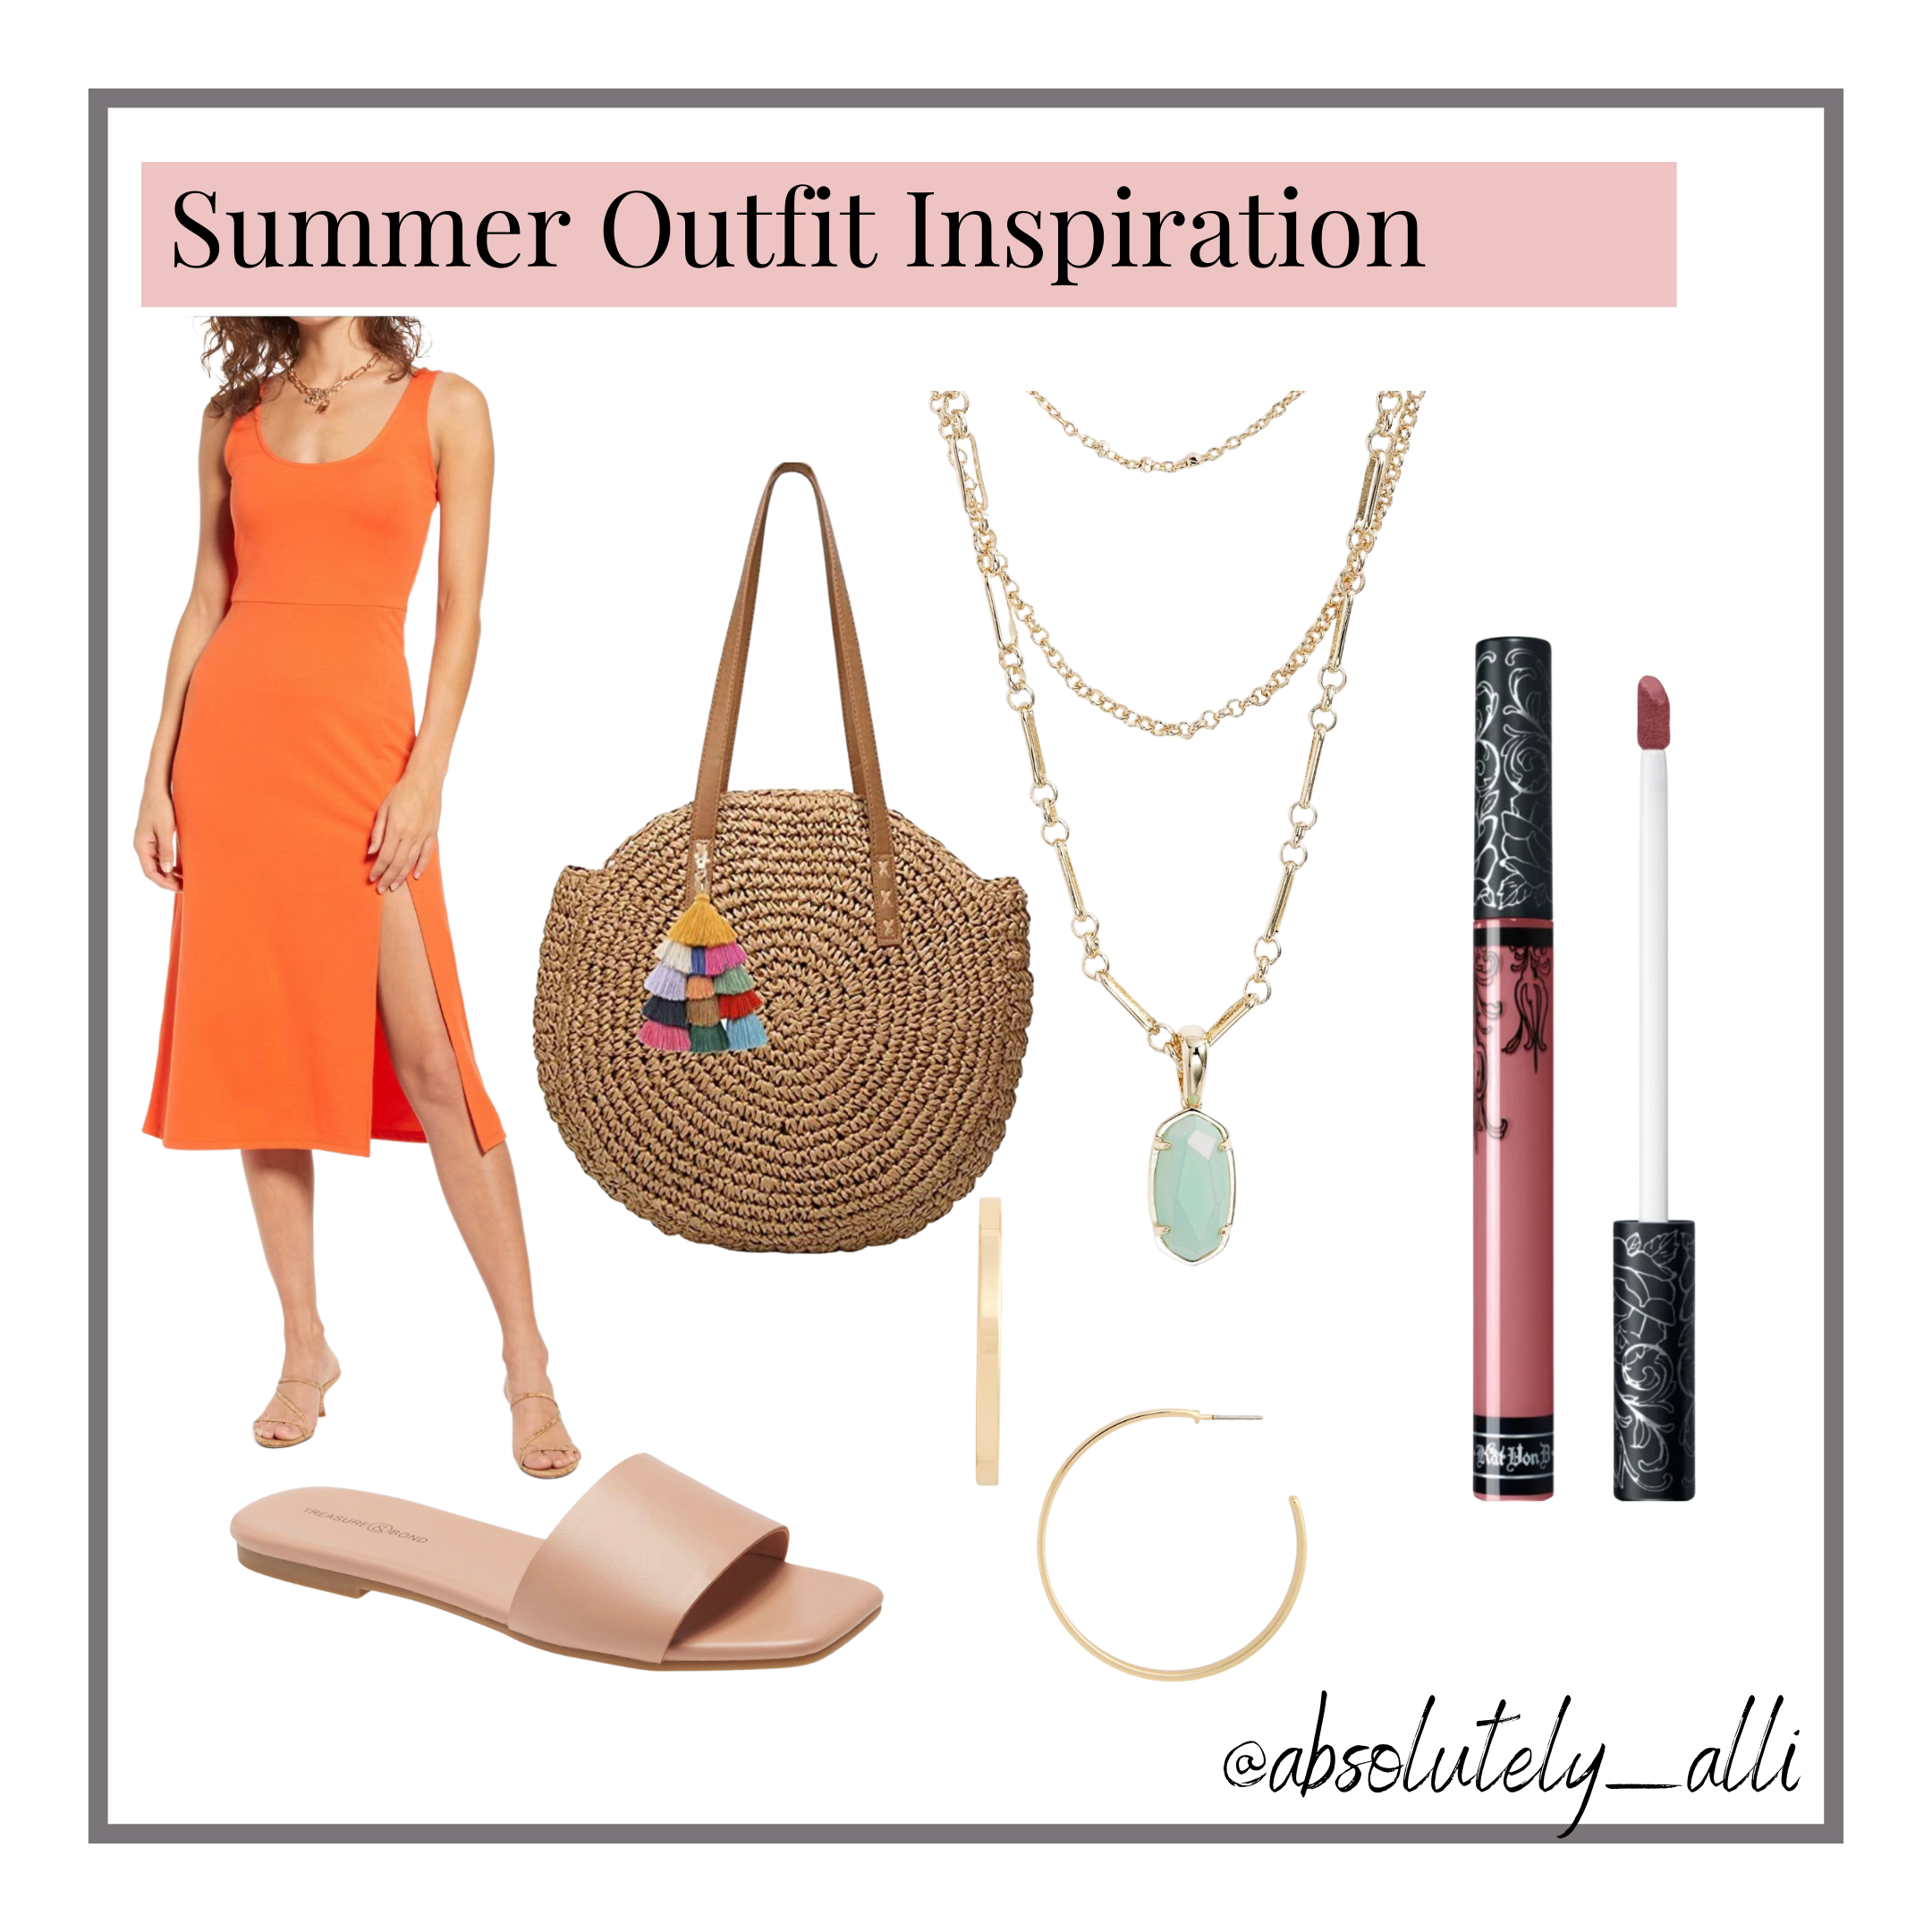 Affordable fashion, Affordable Stye, Summer Style Inspo